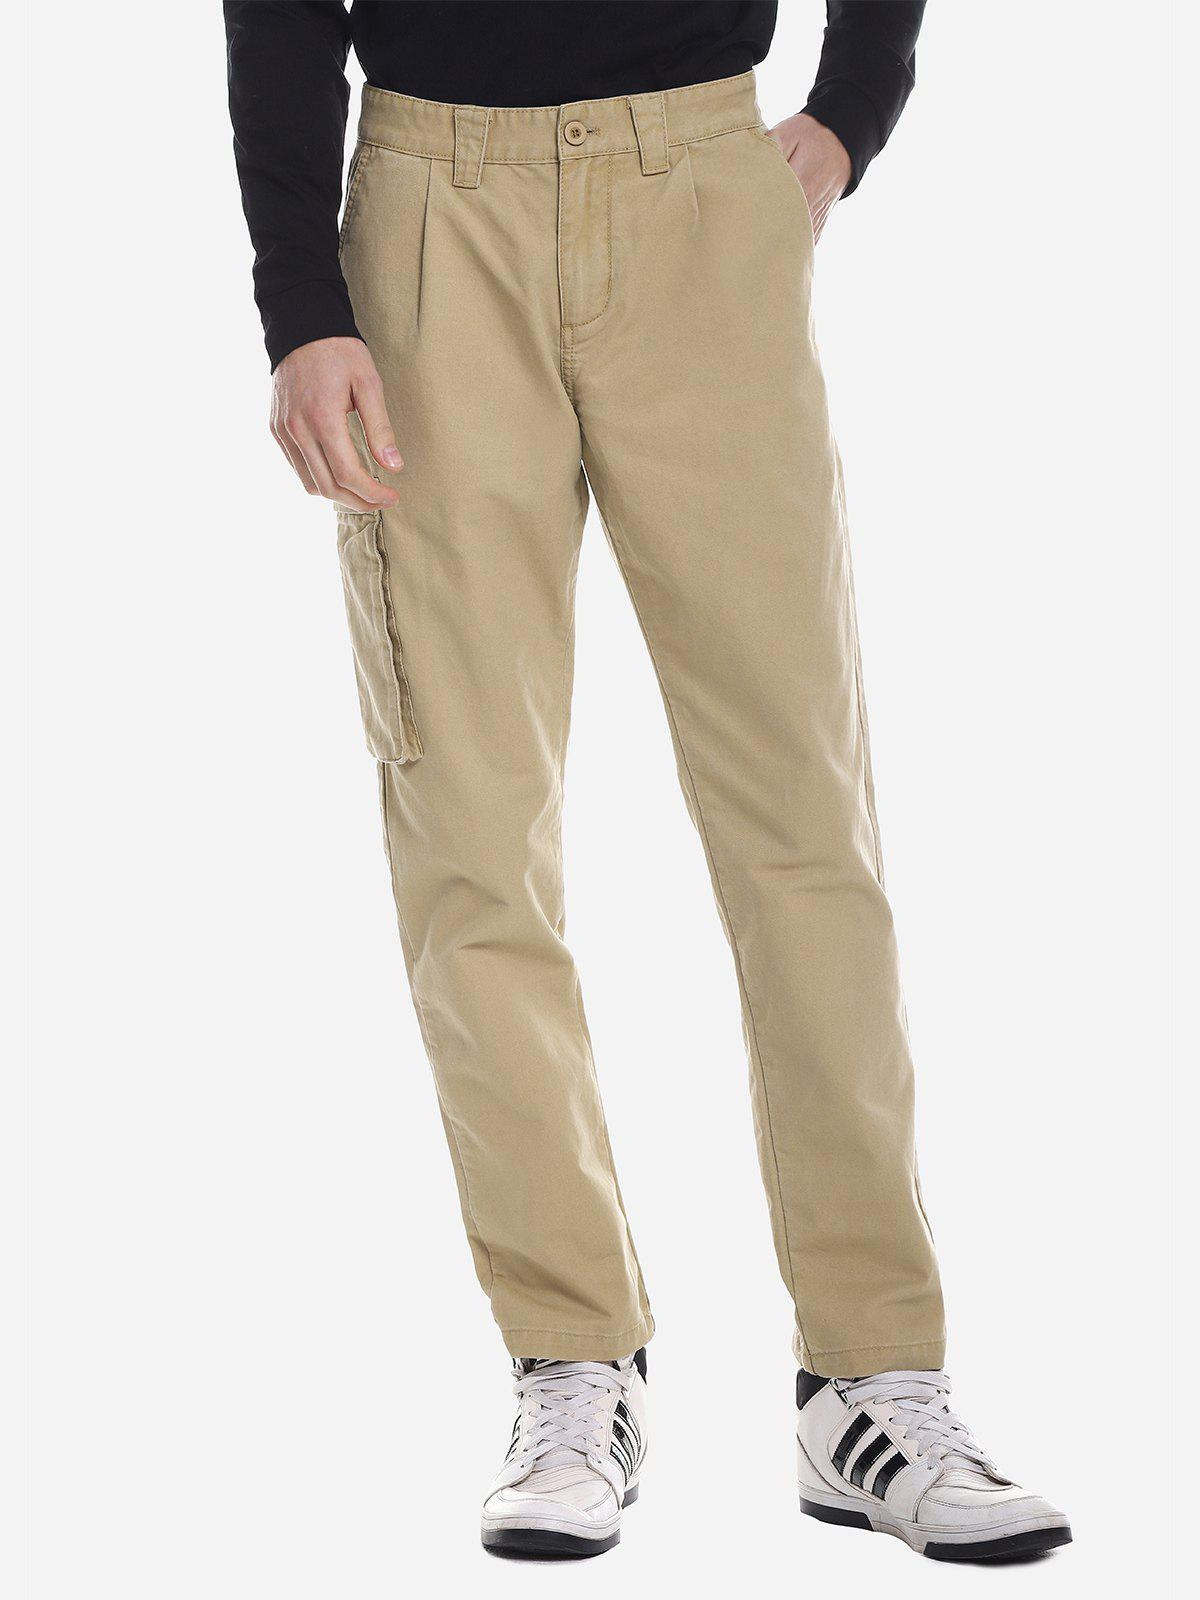 ZANSTYLE Men Side Pocket Belted Pants - KHAKI 40